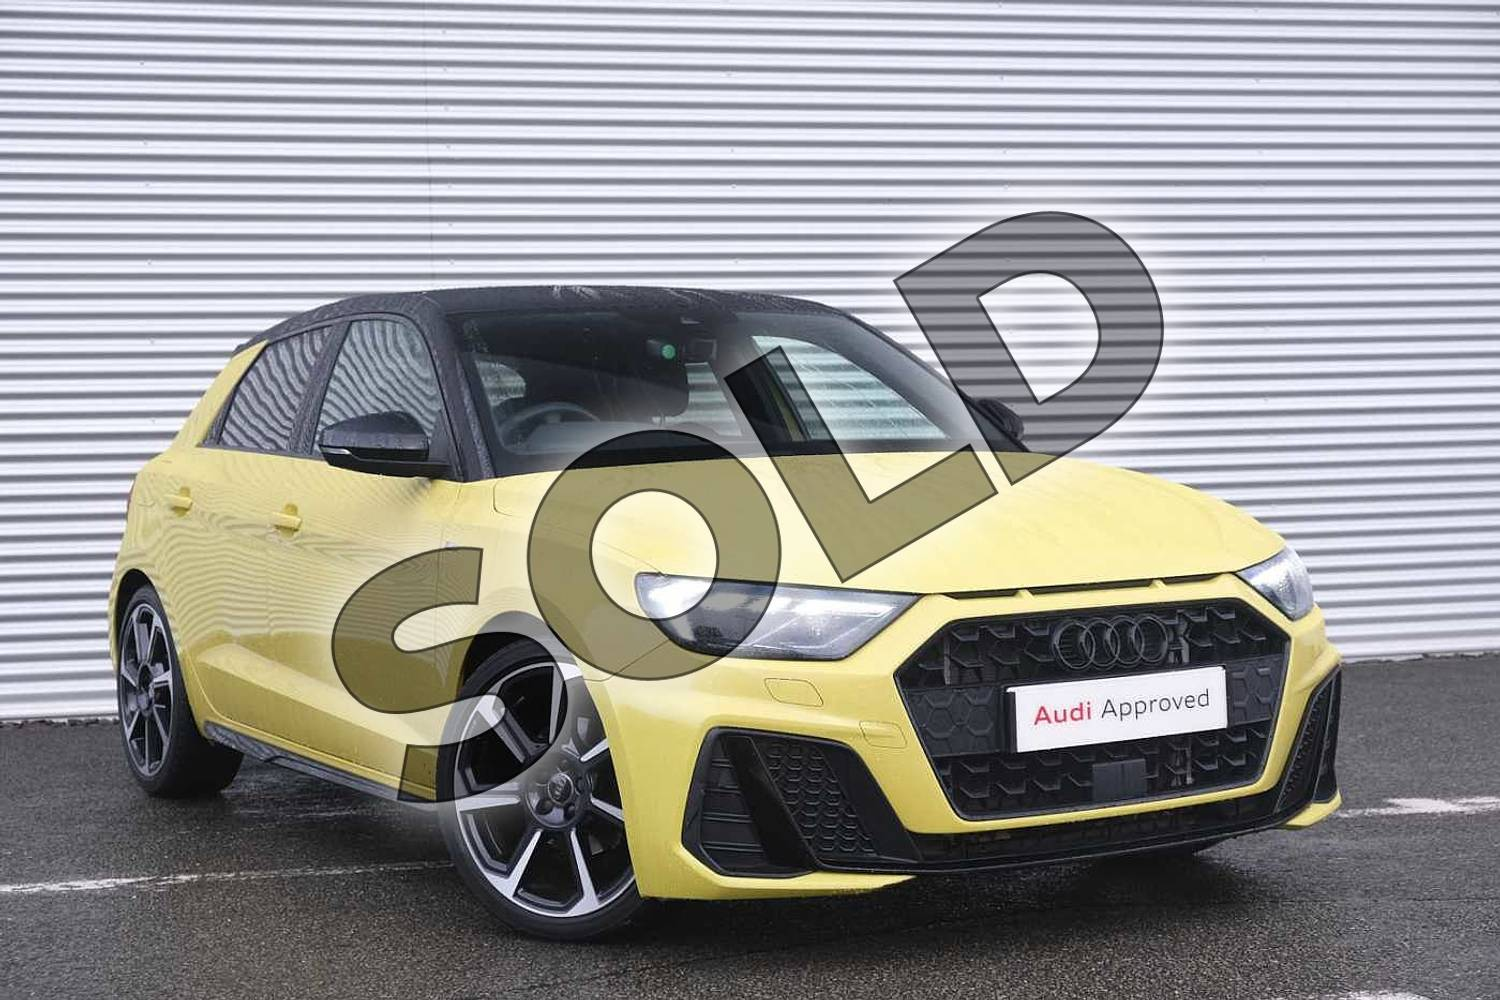 Audi A1 Special Editions 35 TFSI S Line Contrast Edition 5dr S Tronic